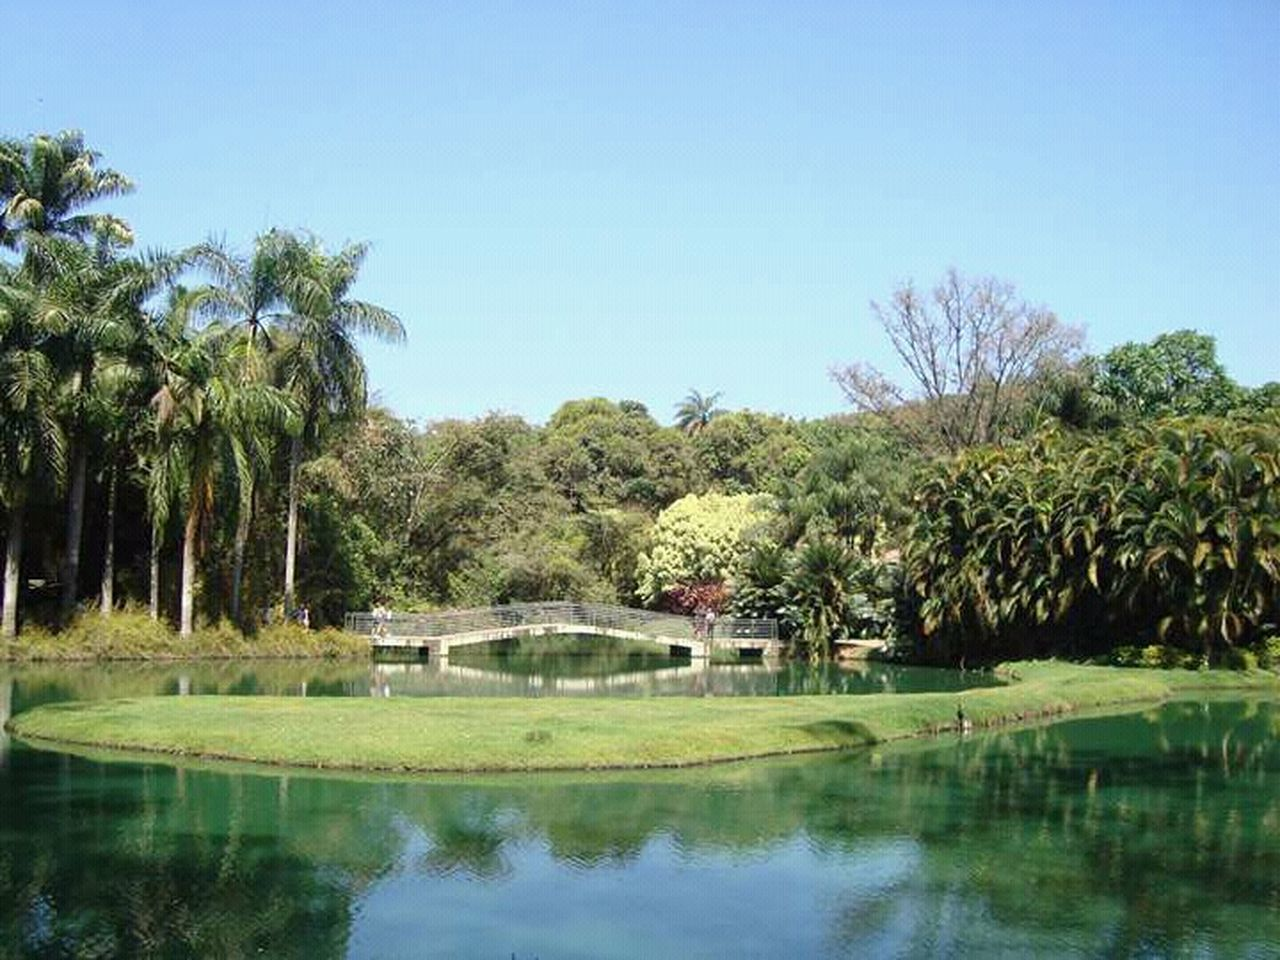 tree, palm tree, reflection, water, no people, lake, nature, day, outdoors, clear sky, beauty in nature, scenics, sky, golf course